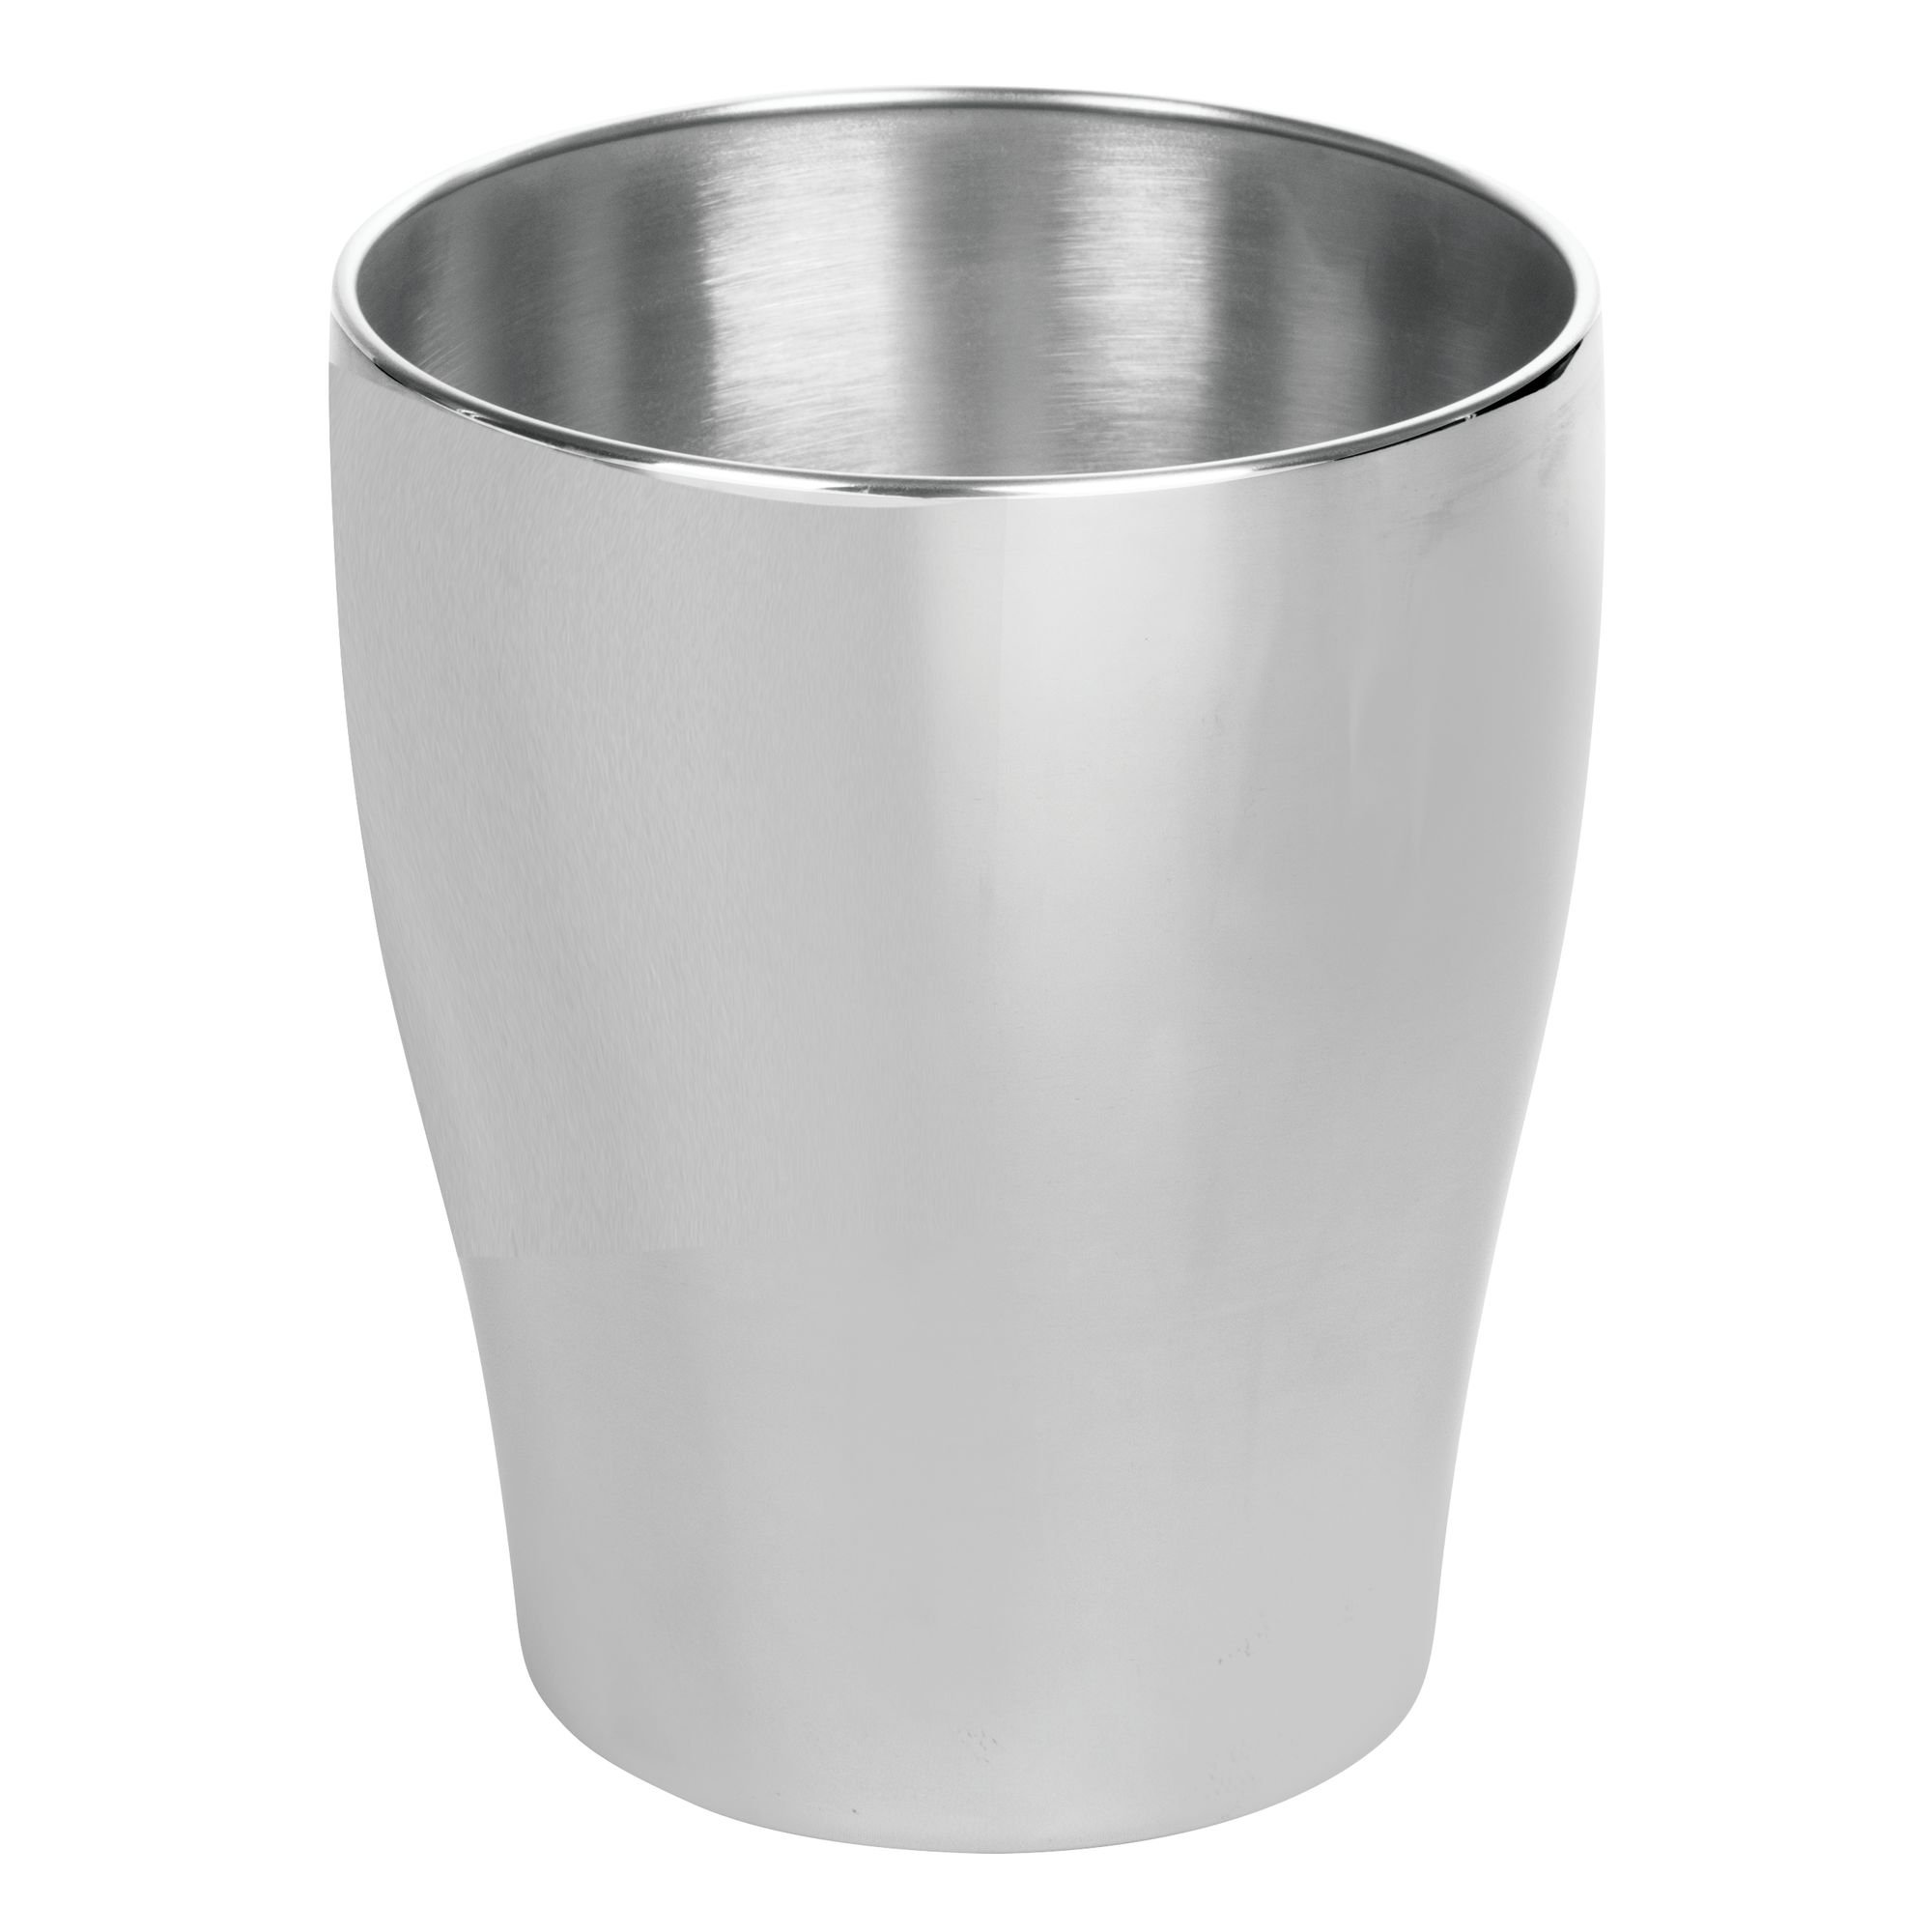 mDesign Modern Round Metal Small Trash Can Wastebasket, Garbage Container Bin for Bathrooms, Kitchens, Home Offices - Durable Stainless Steel Construction with a Brushed Finish